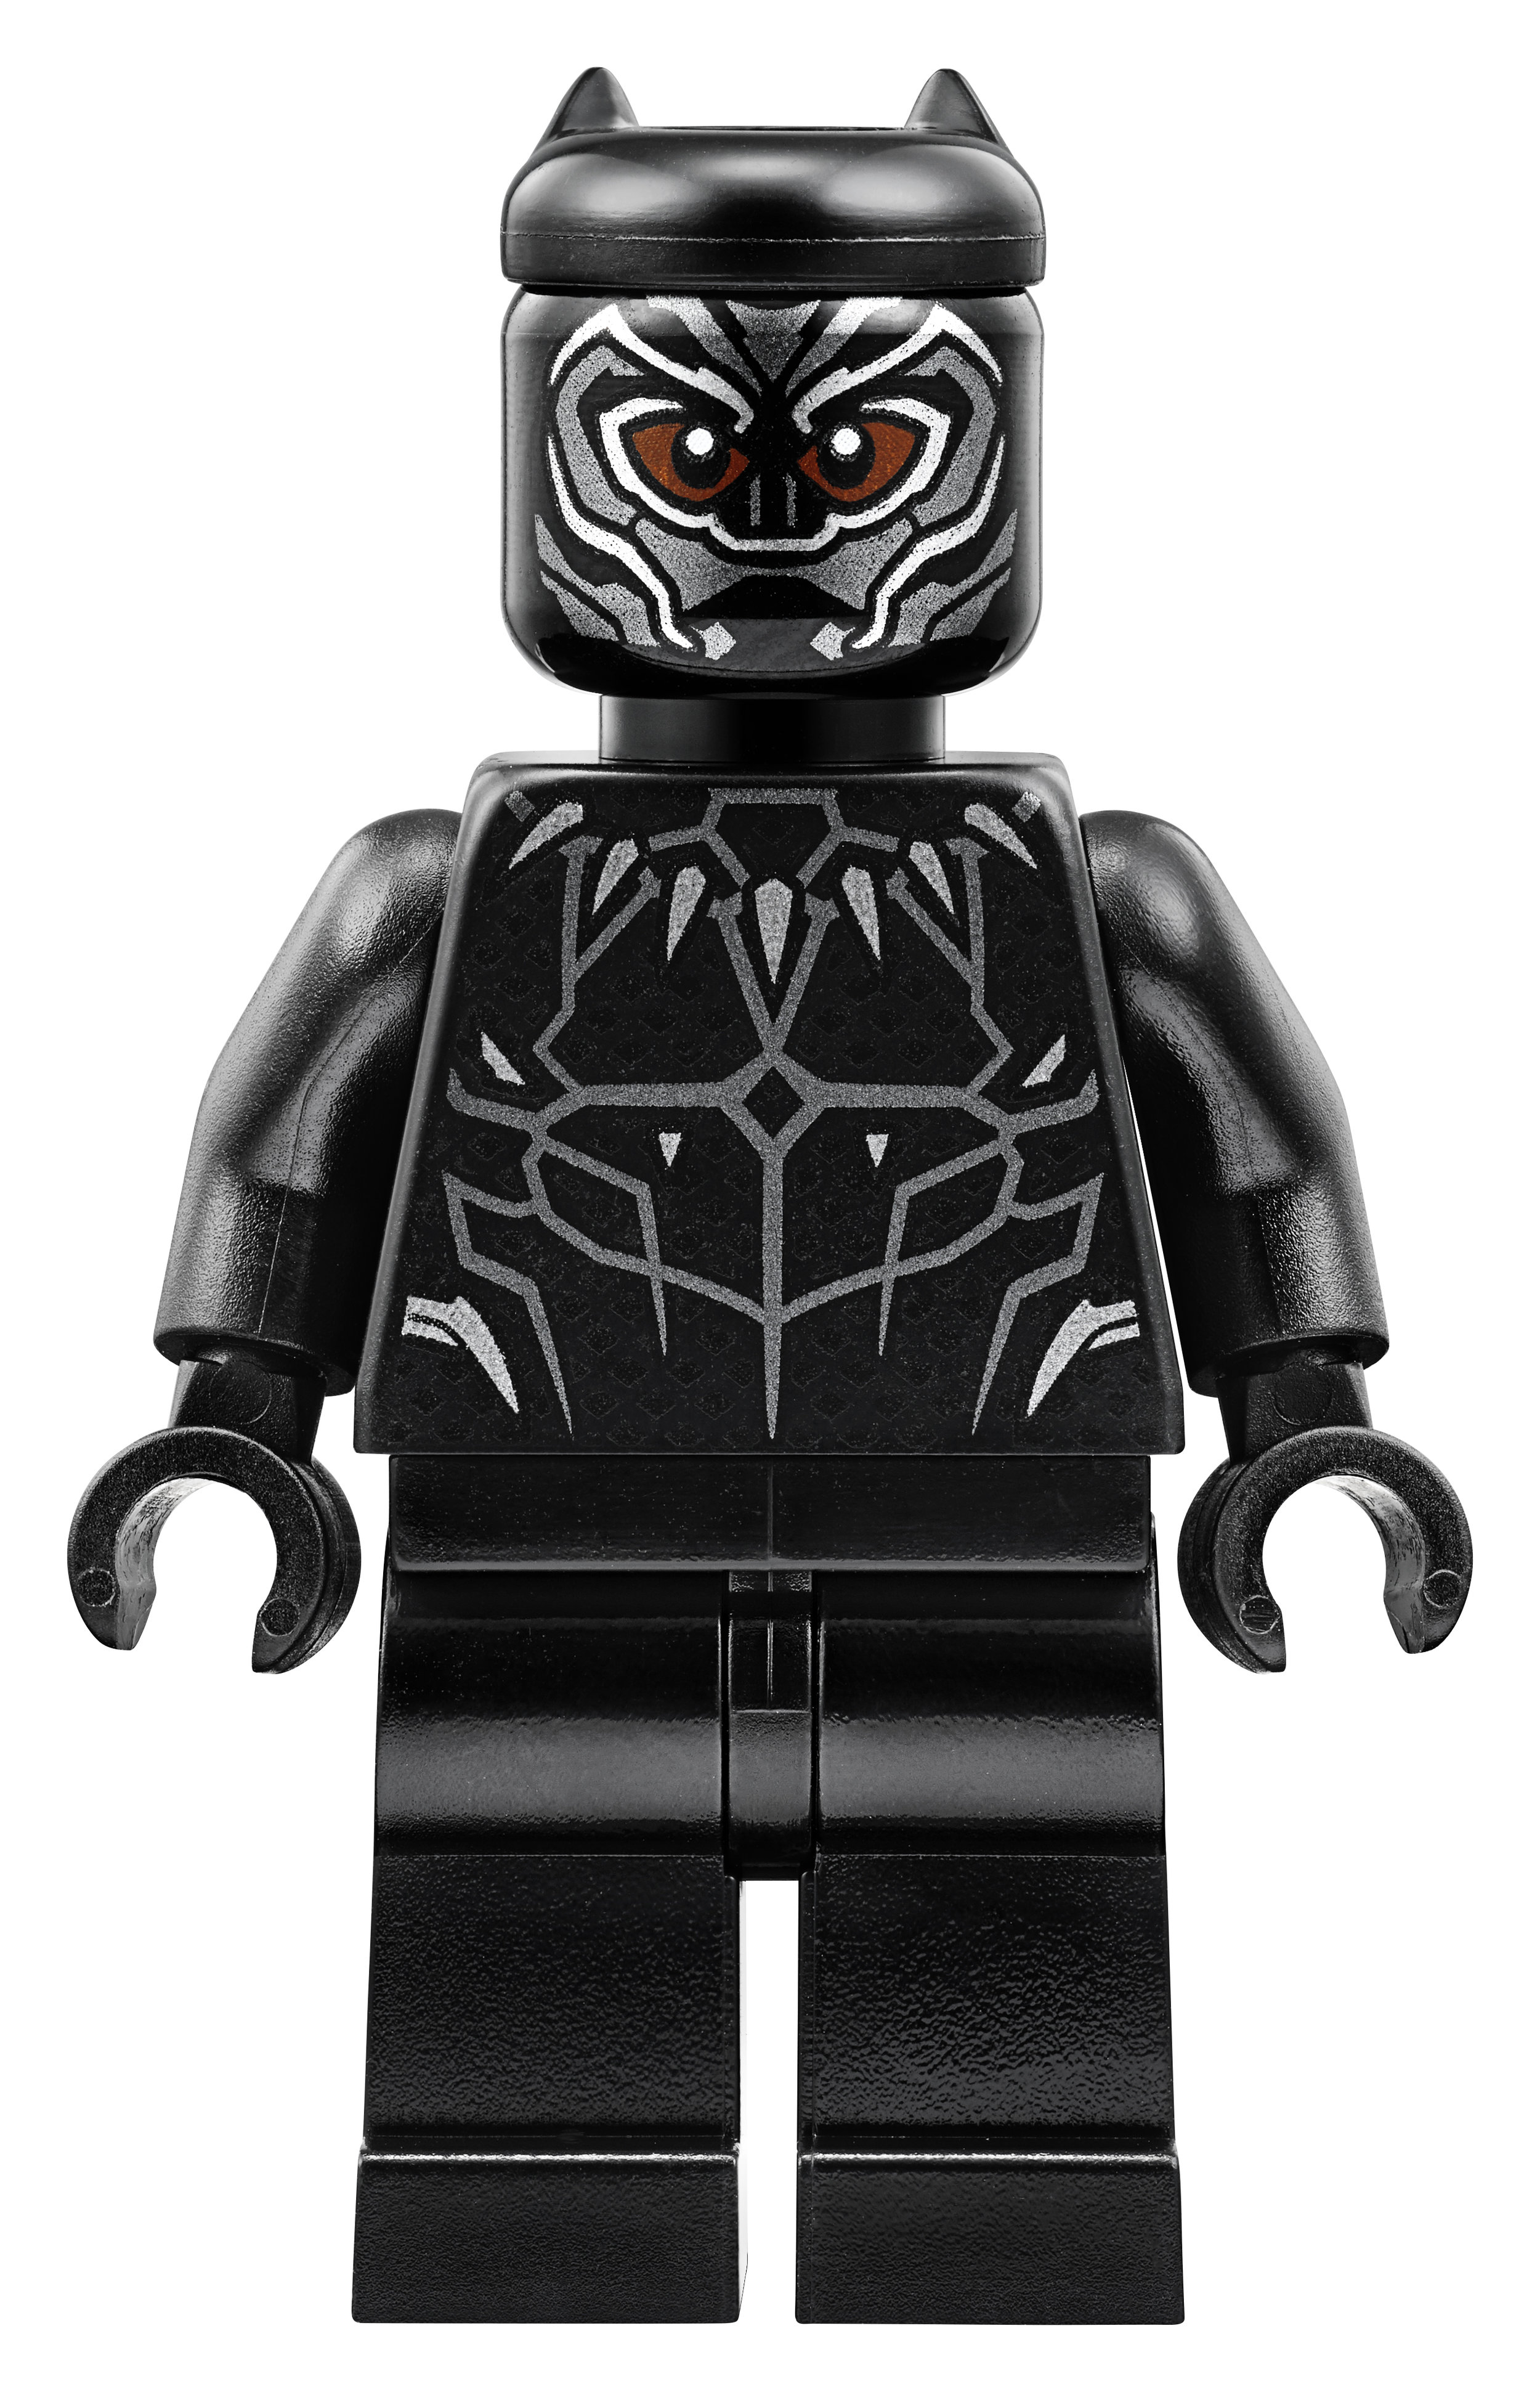 76103_1to1_MF_BlackPanther.jpg